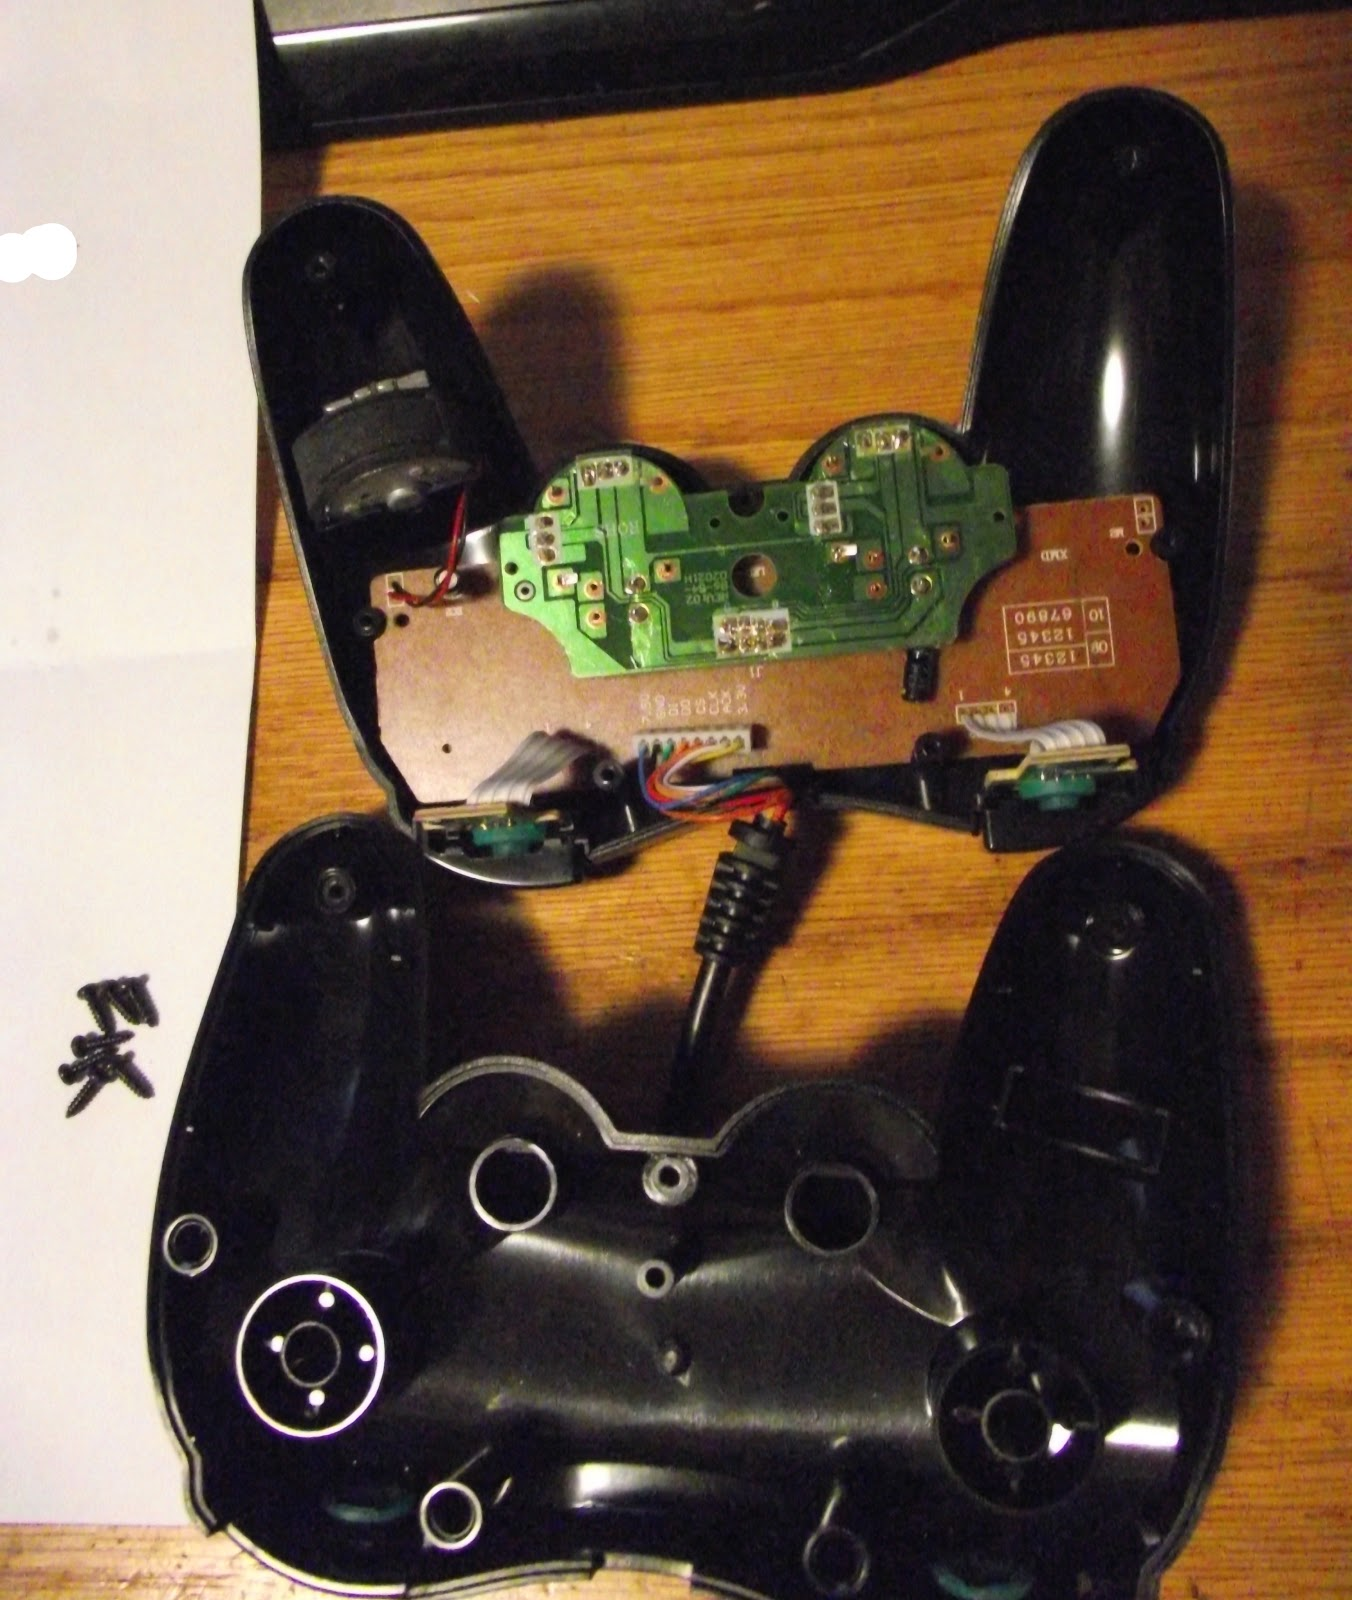 Digitalduino Interfacing A Playstation 2 Ps2 Controller With Arduino Wiring Diagram Here Is The Inside